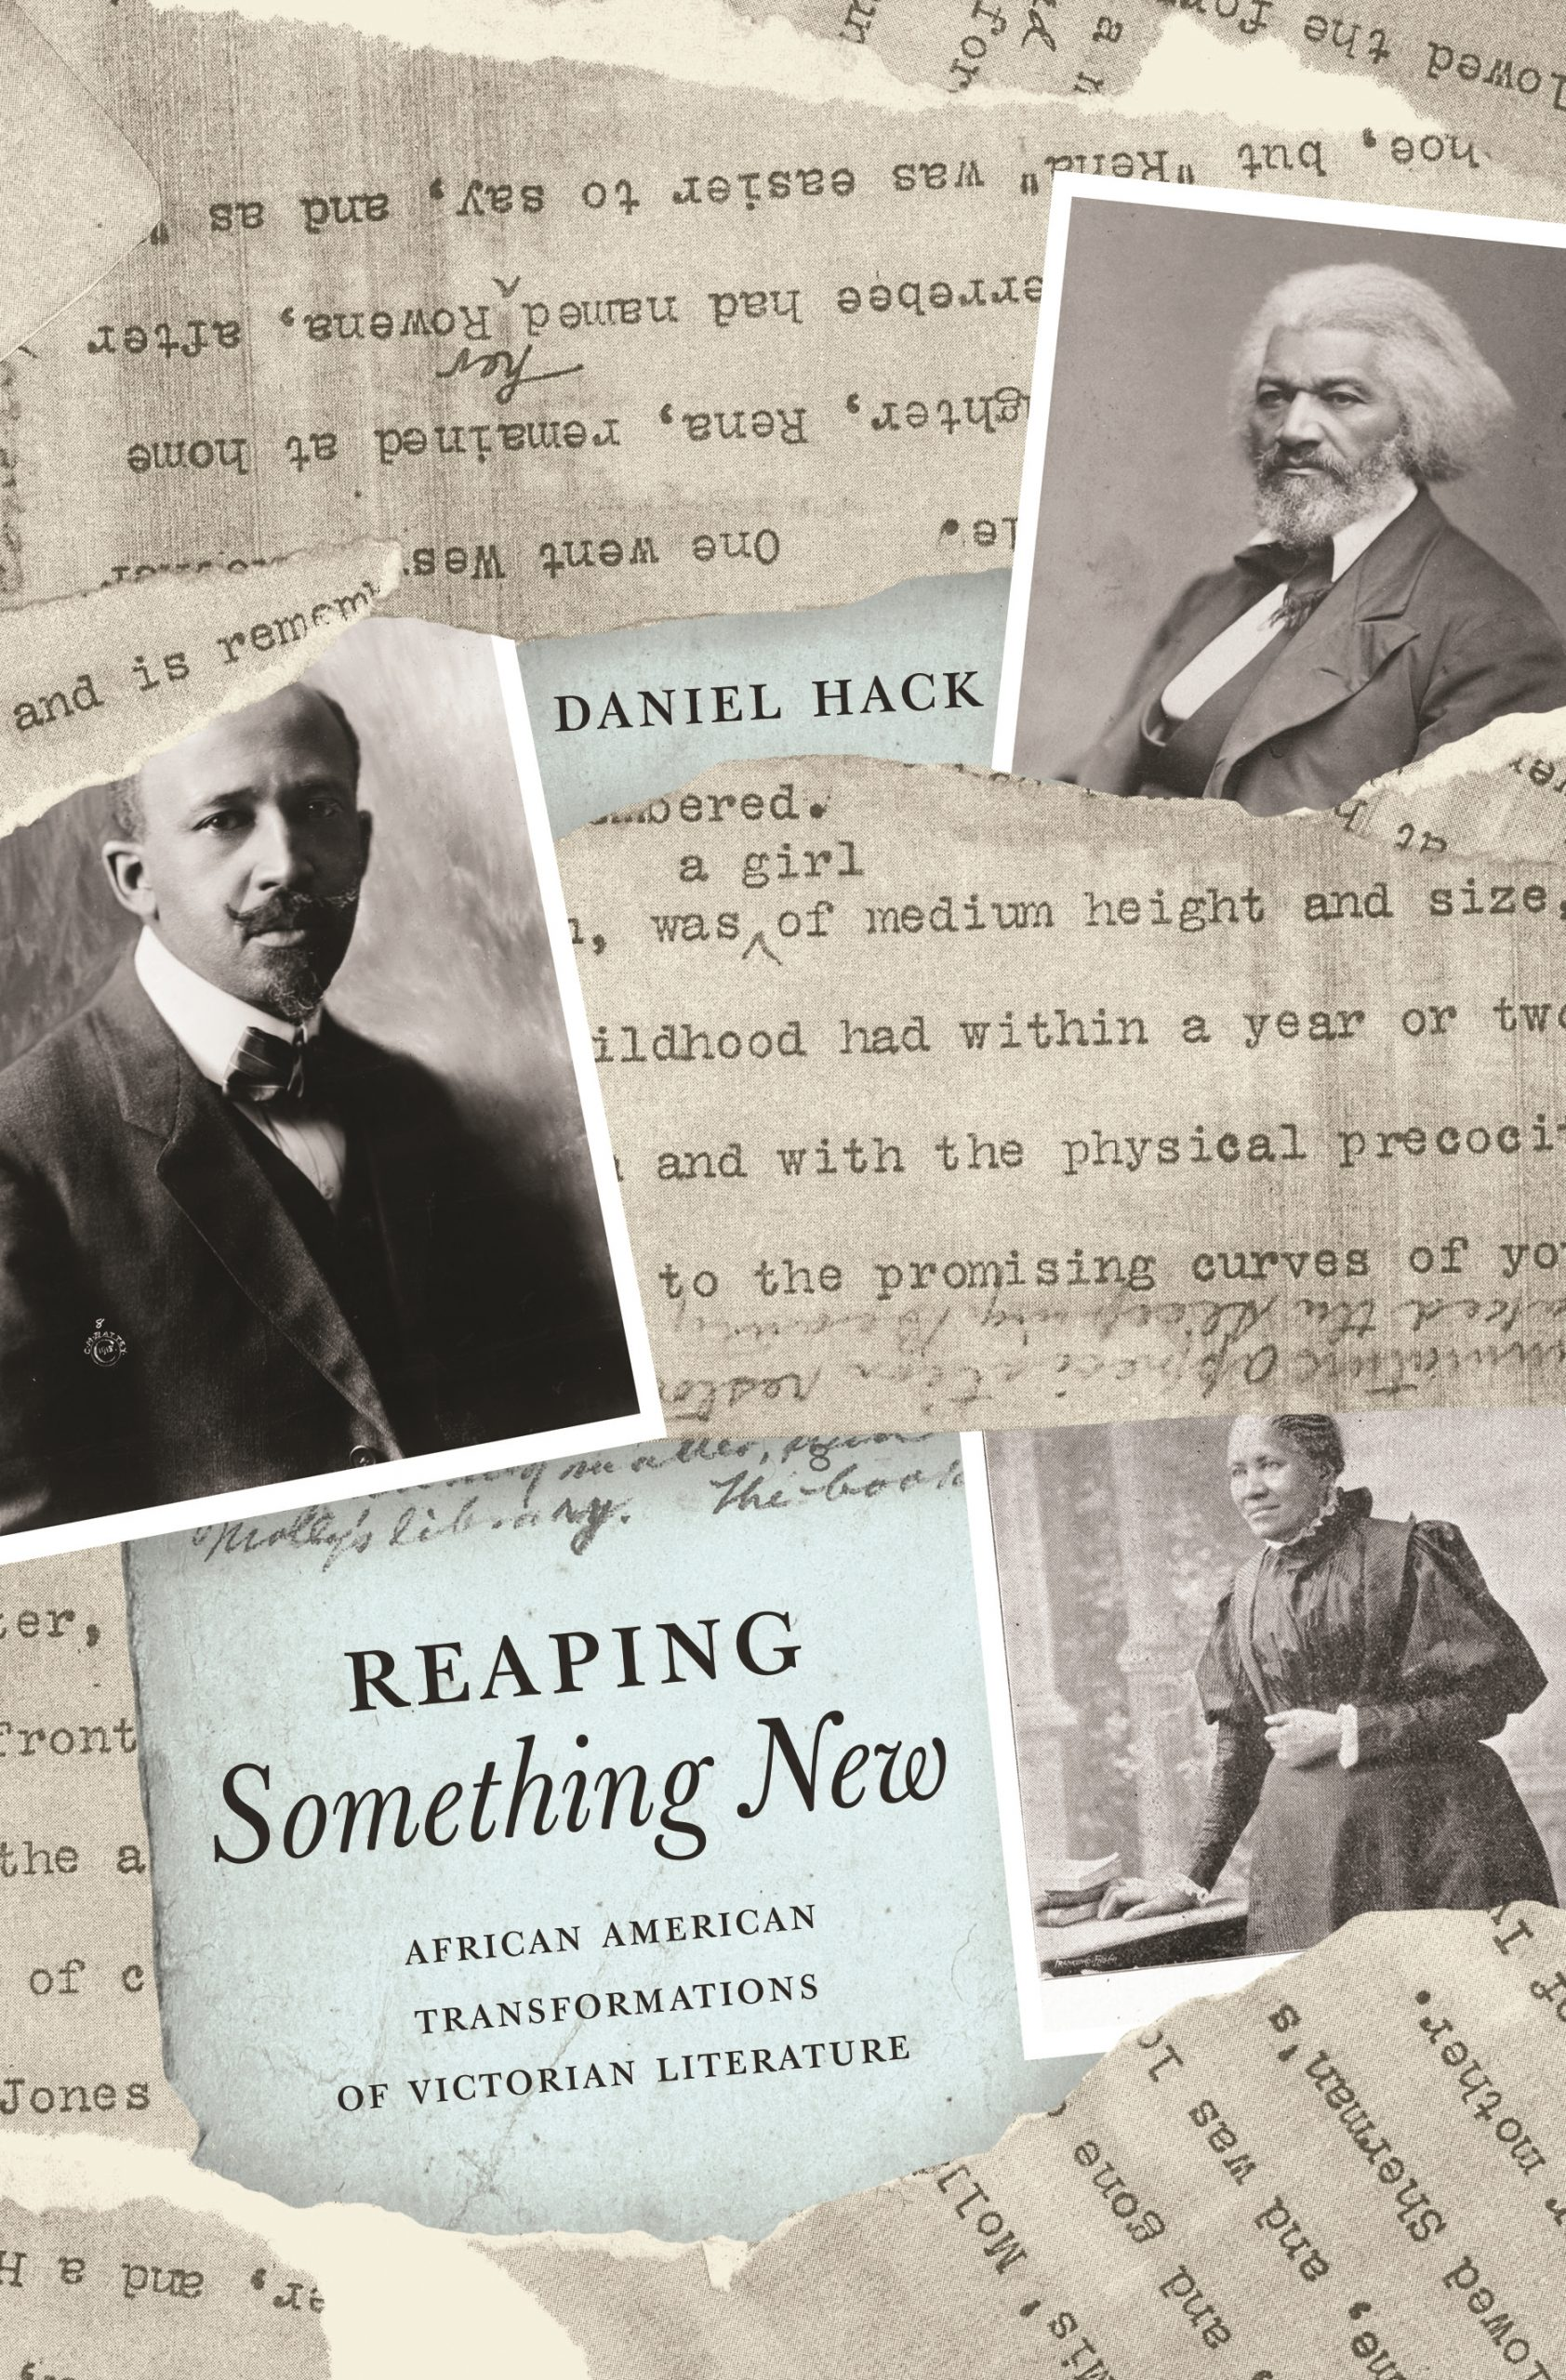 Reaping Something New African American Transformations of Victorian Literature by Daniel Hack